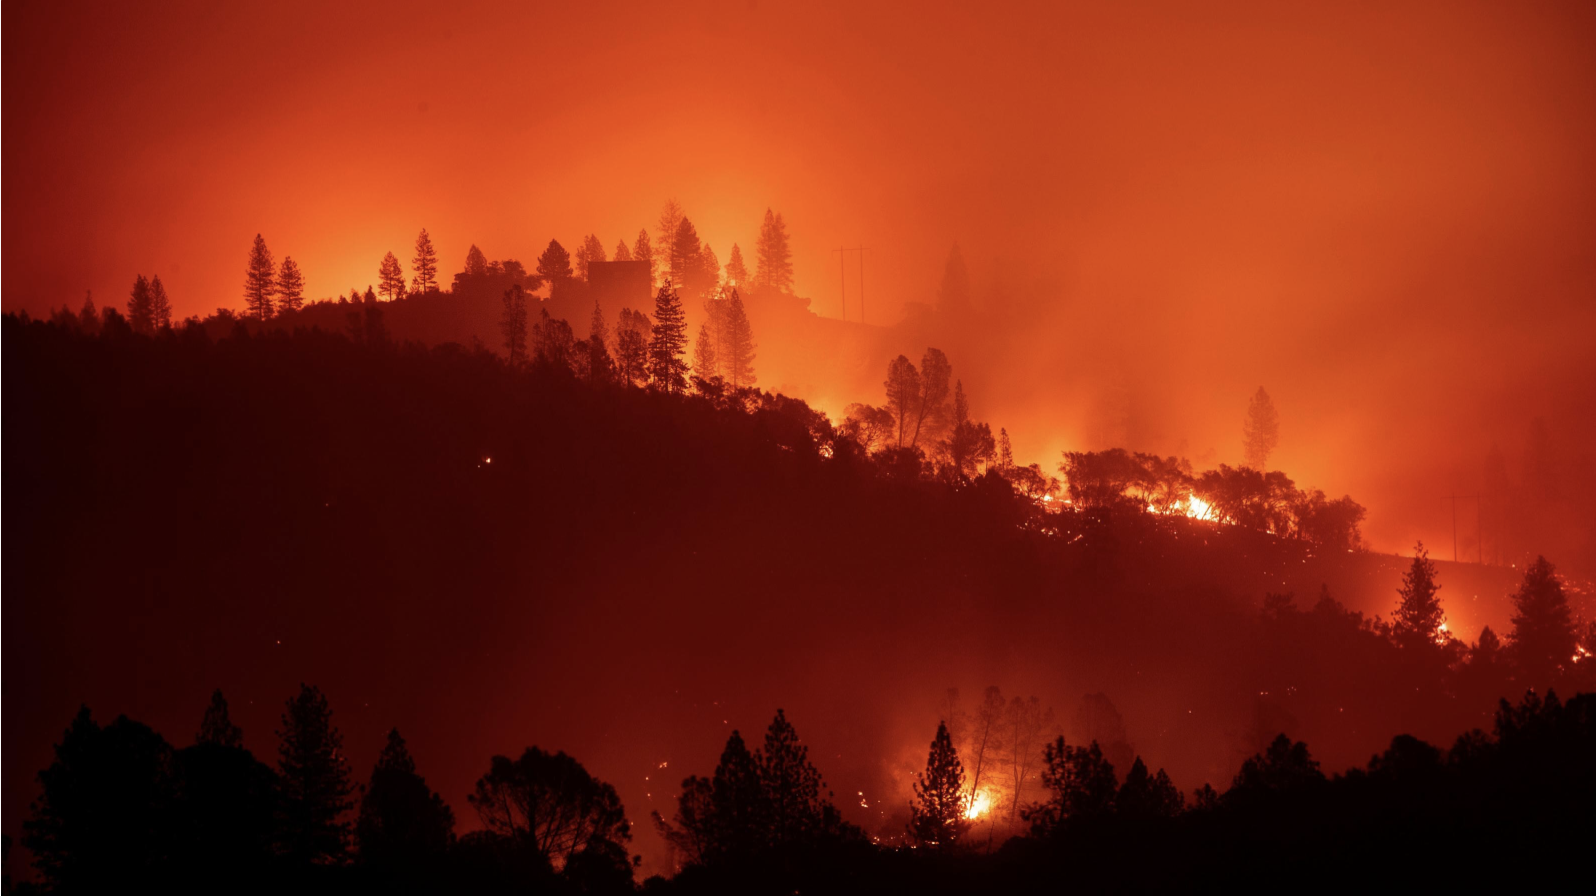 climate change helped make california a tinder box for its record-setting wildfires